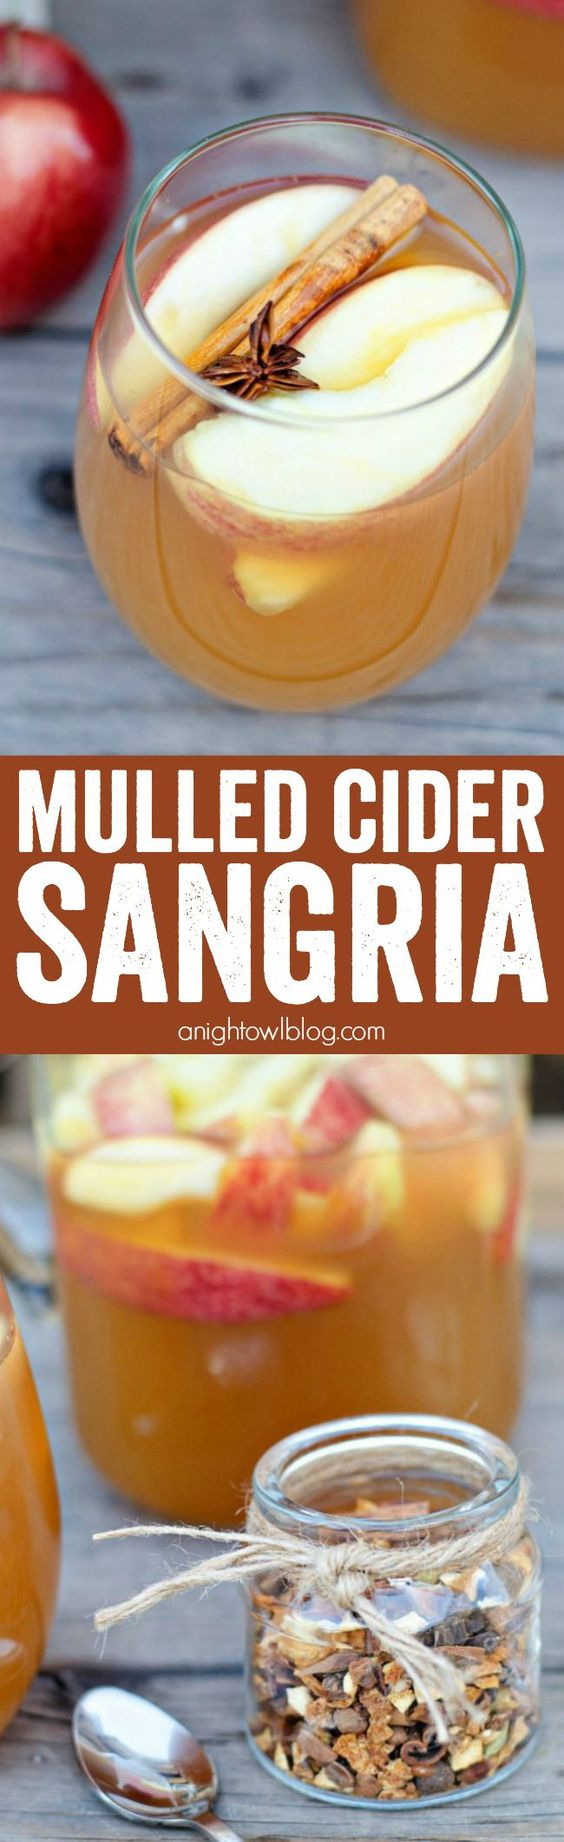 Mulled Apple Cider Sangria | Recipe | Muslin bags, Apple ...